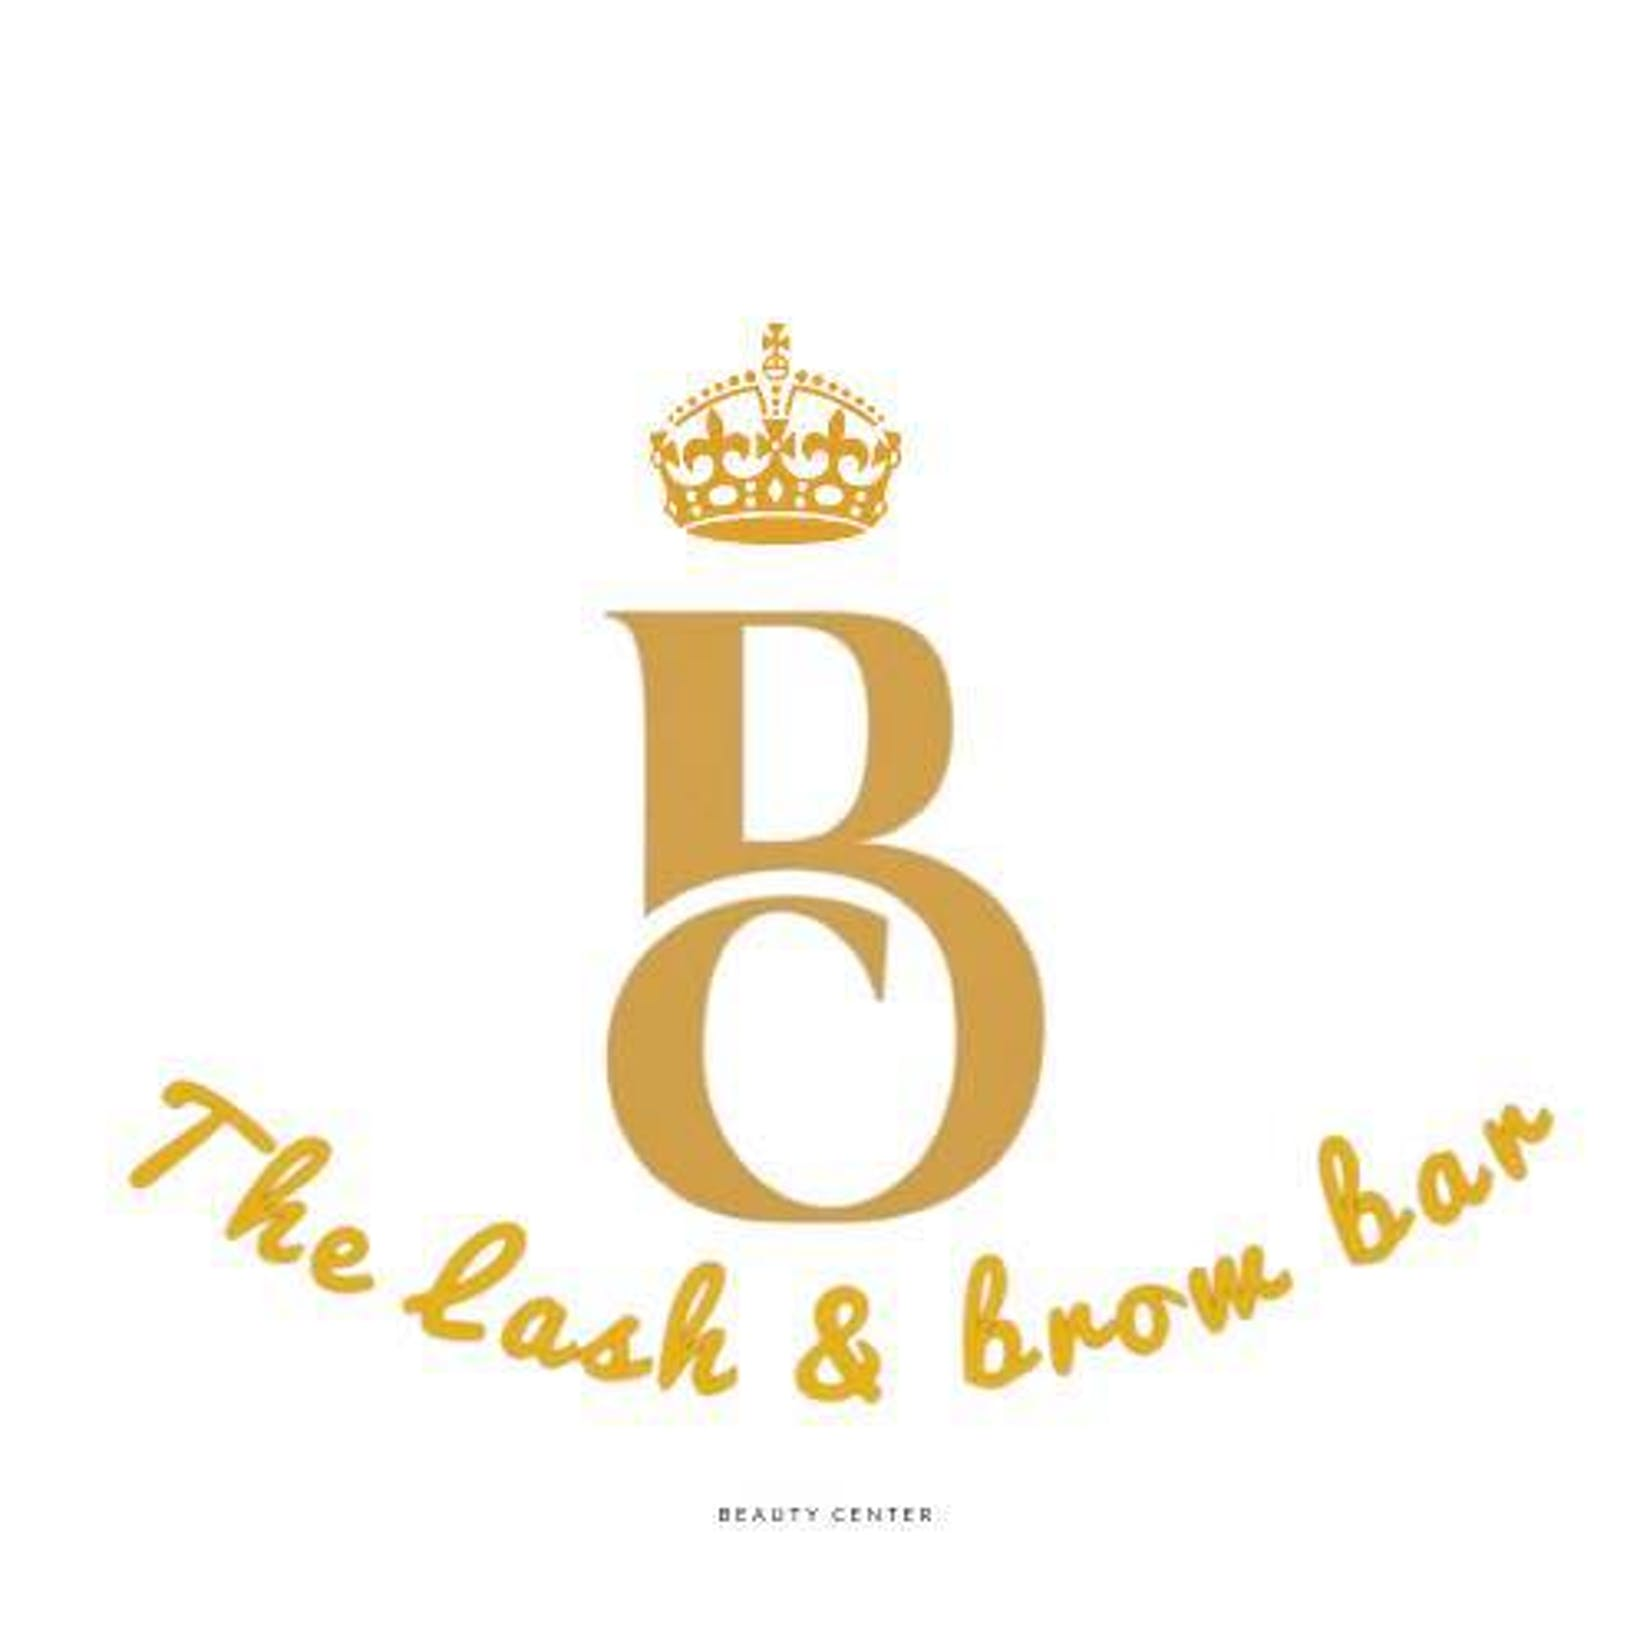 The Lash & Brow Bar | Beauty